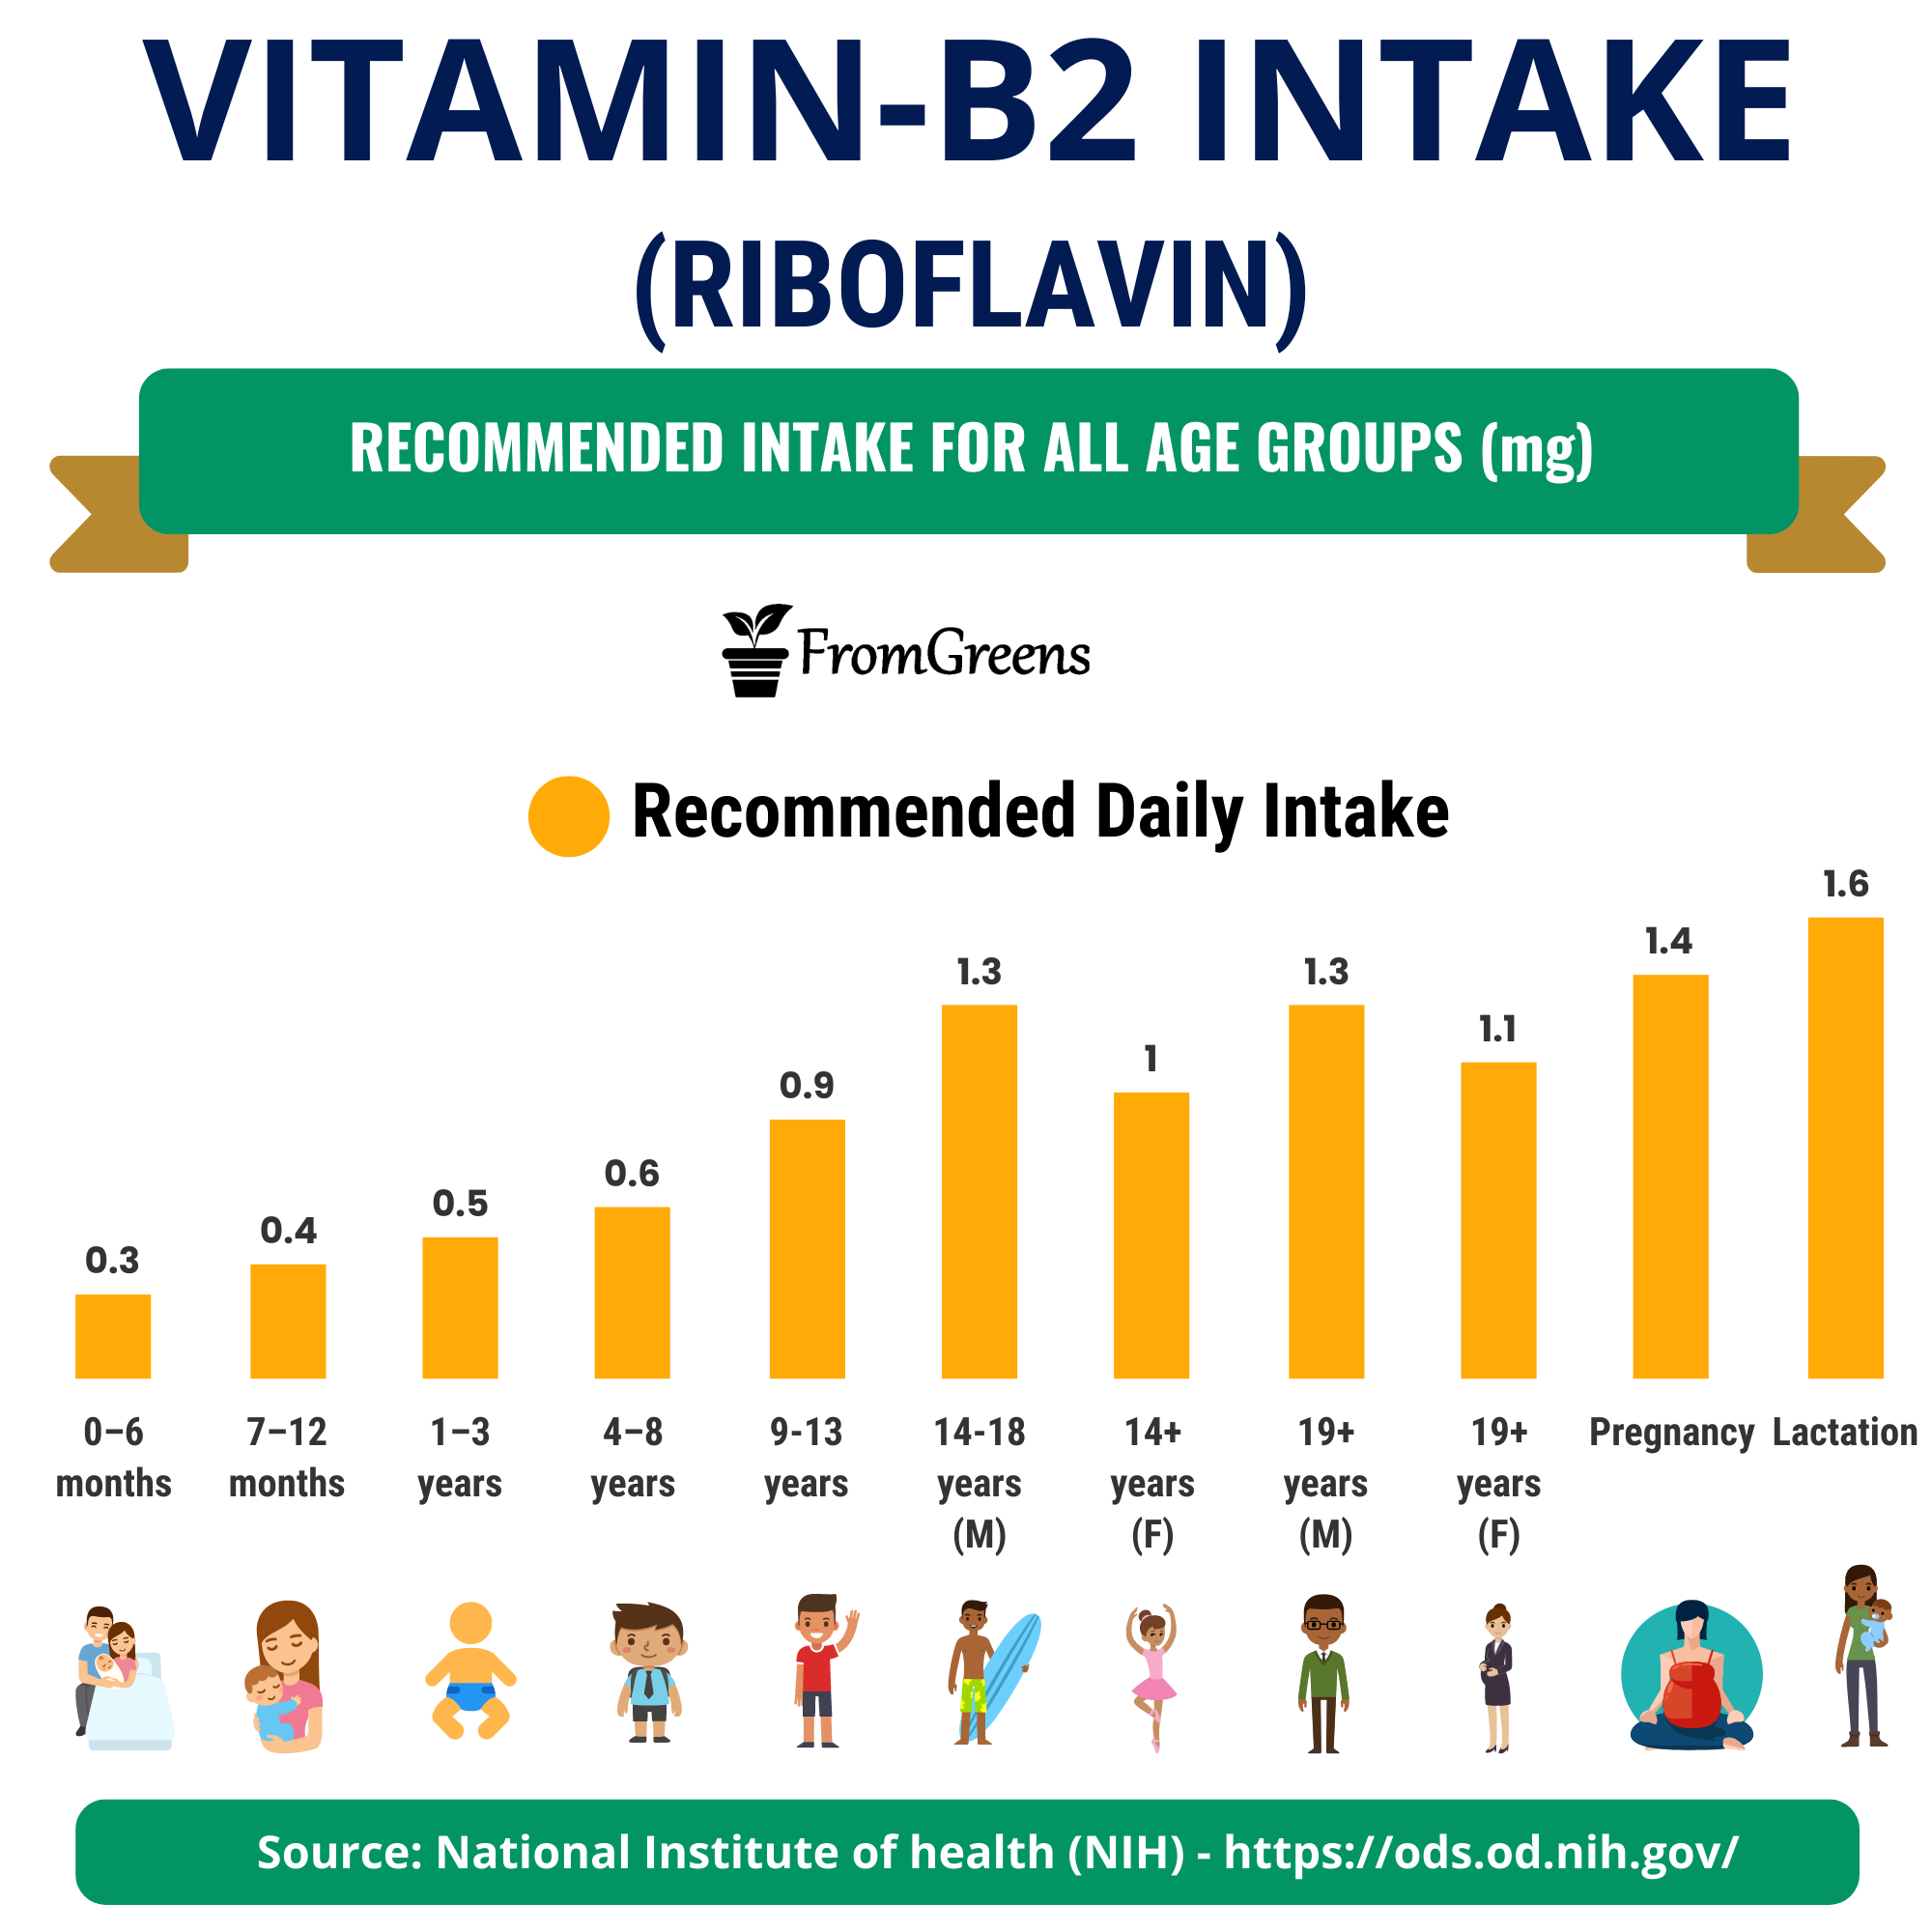 how much vitamin b2 riboflavin is recommended daily